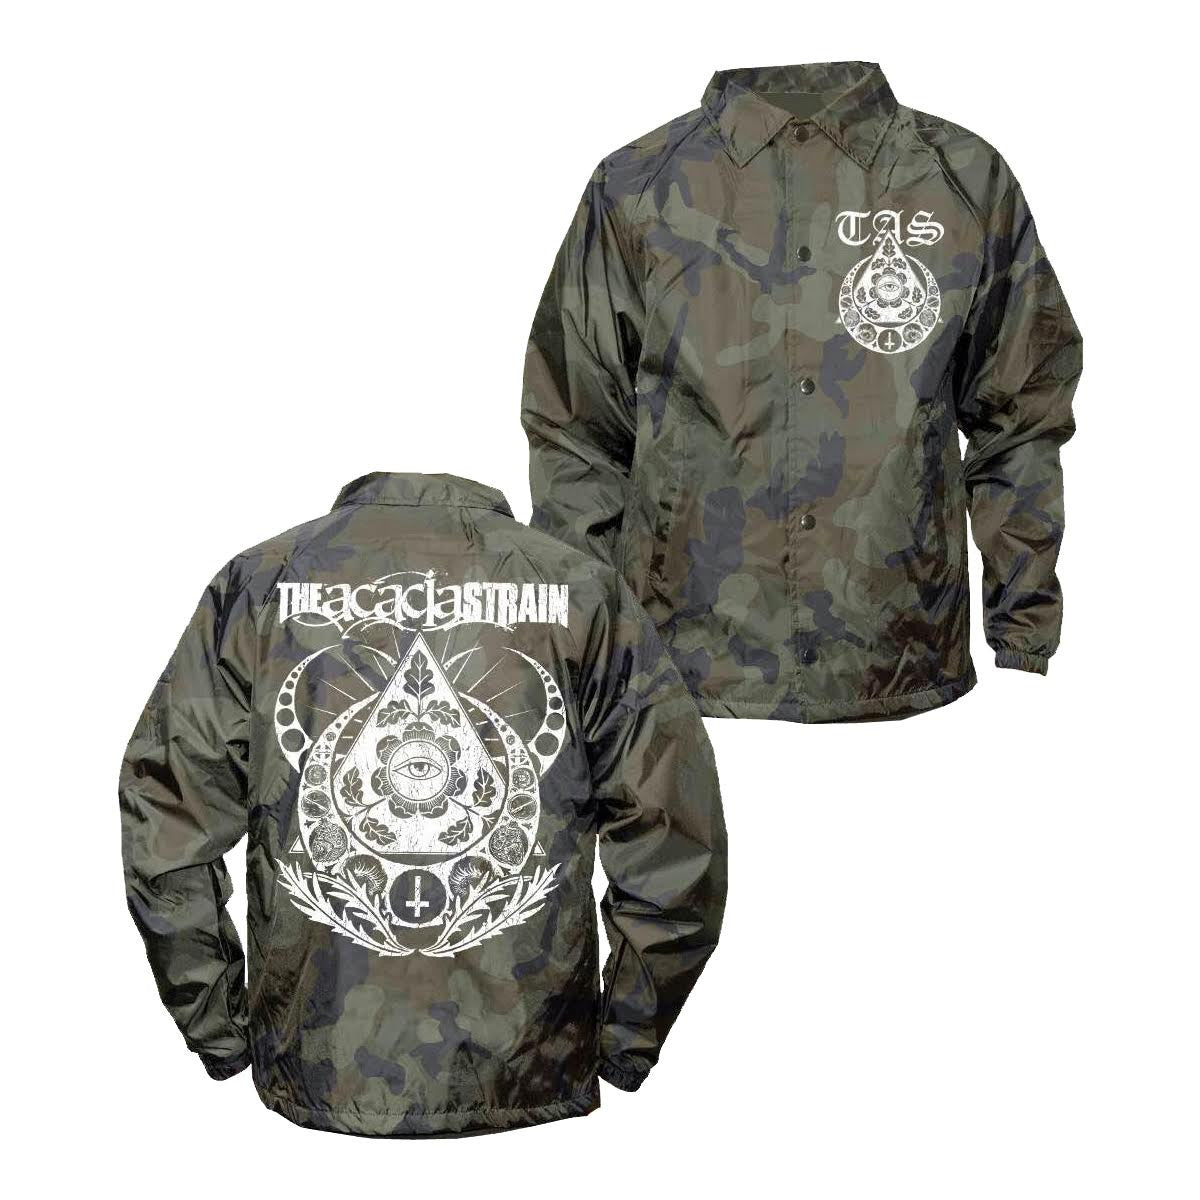 The Acacia Strain - Camo Windbreaker - Merch Limited